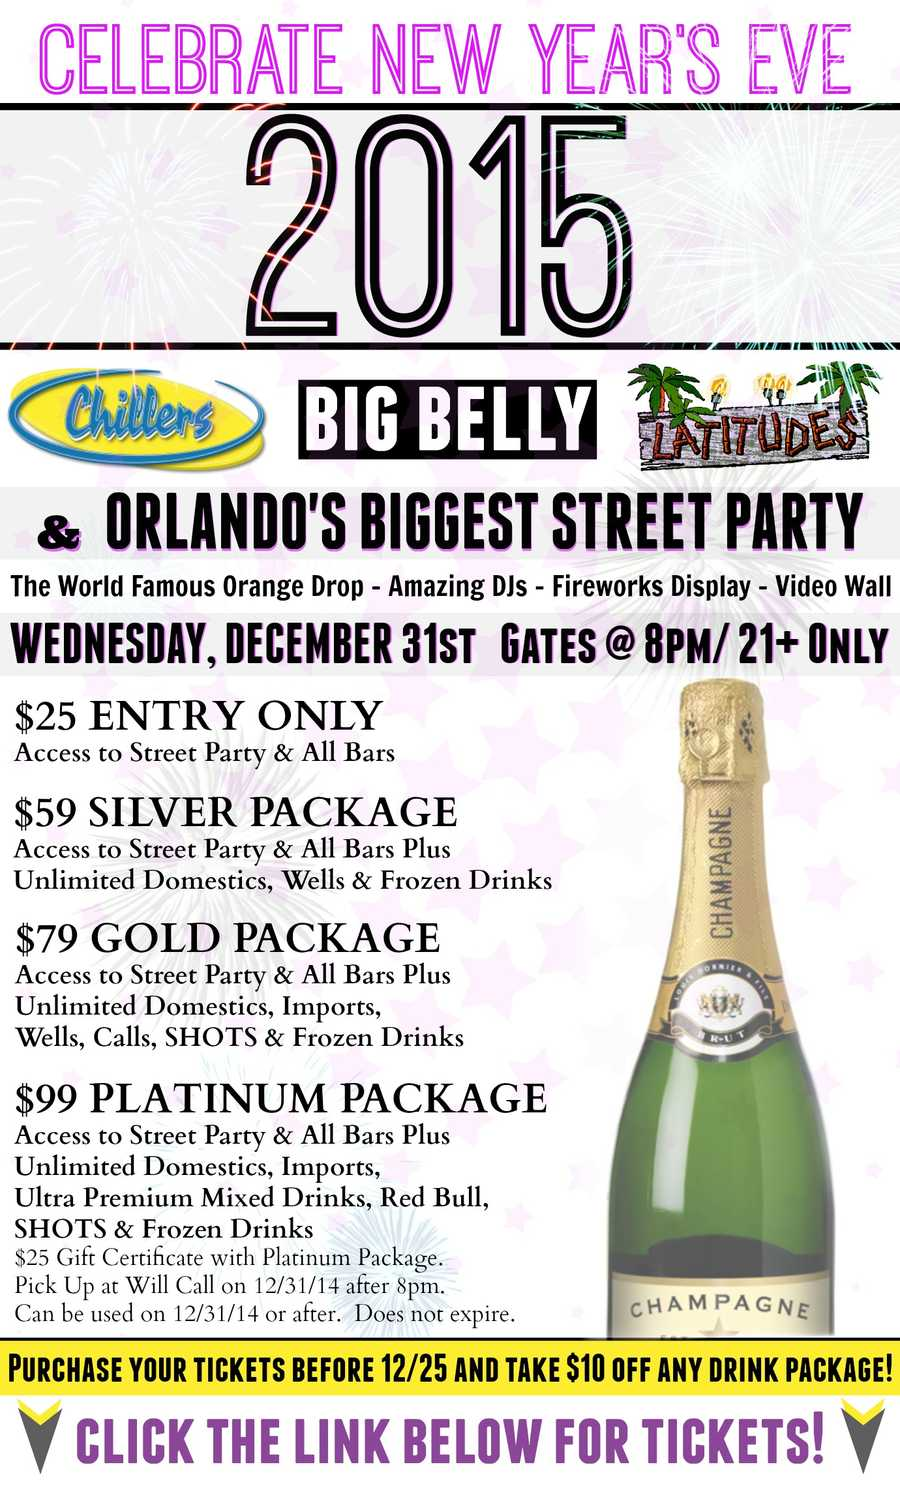 1. Church Street New Year's Eve PartyThis is the Orlando version of the New York City ball drop. You will see the orange drop at midnight with fireworks. You can also access the Church Street district, which includes Chillers, Big Belly Brewery and Latitudes. Cost: $25 entry only, $59 entry and unlimited domestics, wells and frozen drinks, $79 entry, unlimited domestics, imports, wells, calls, shots and frozen drinks, $99 same as previous plus $25 gift certificate